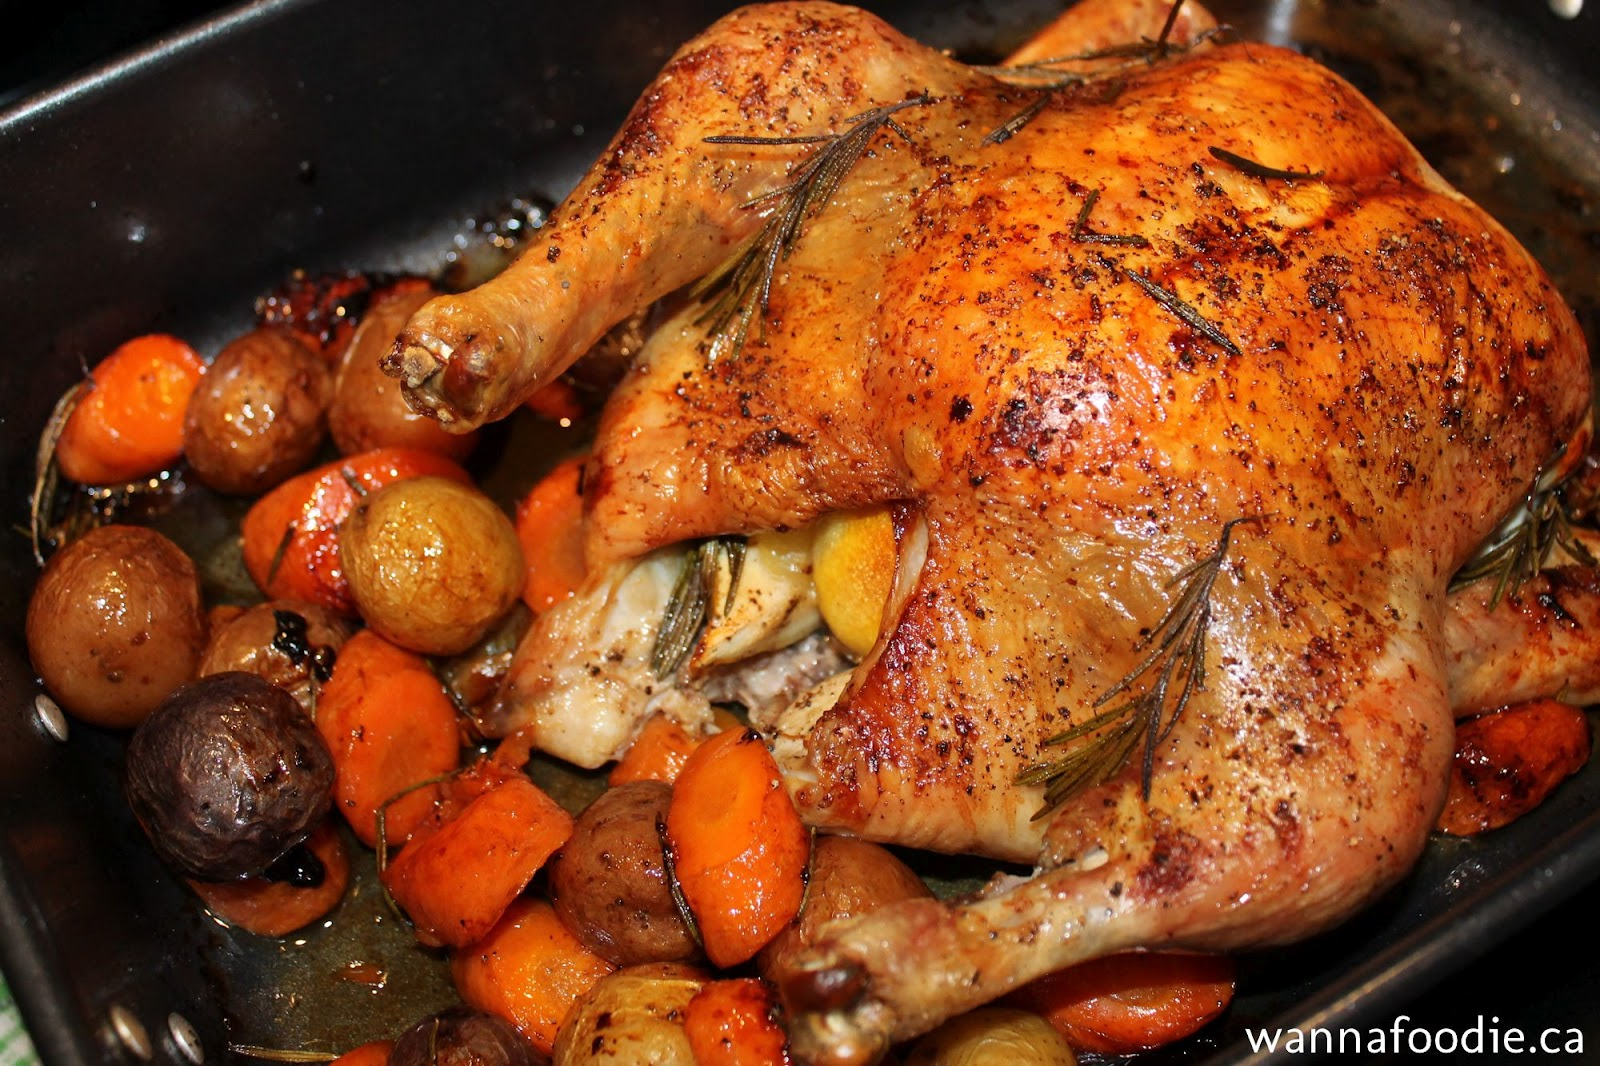 wannafoodie.ca: My Roasted Chicken